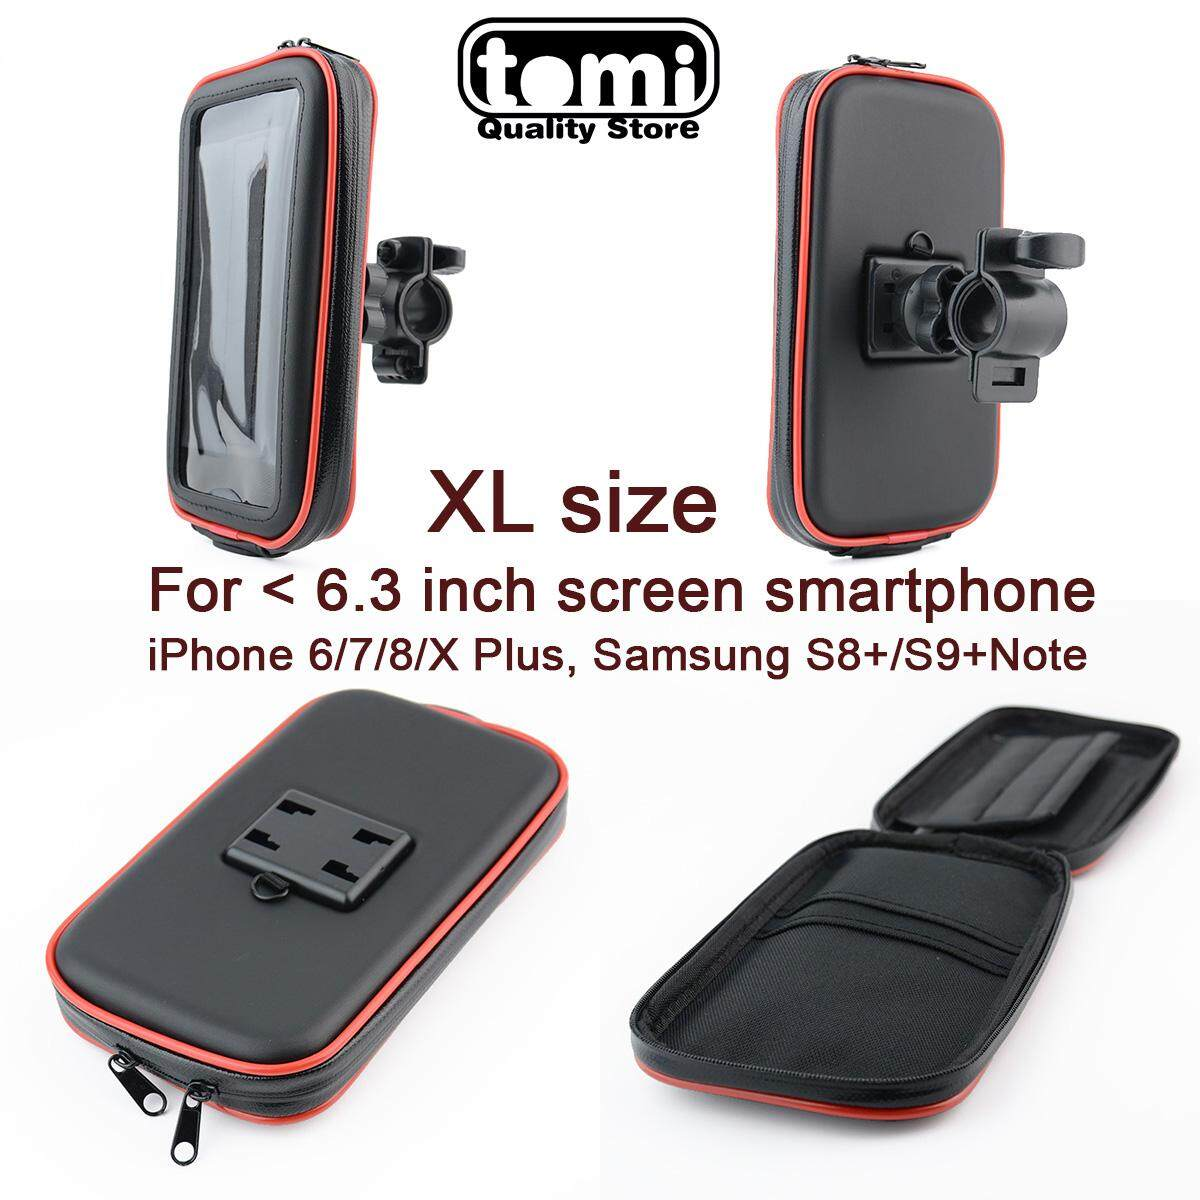 Universal Bike Phone Mount Motorcycle Bicycle Mount Handlebar Holder Bag (Size:XL) Waterproof Phone Case with Access Hole and Card Slots for Smartphone & GPS device Screen size < 6.3inch Huawei P20 Mate 20 Samsung Galaxy Note 9 iPhone 7/8 Plus